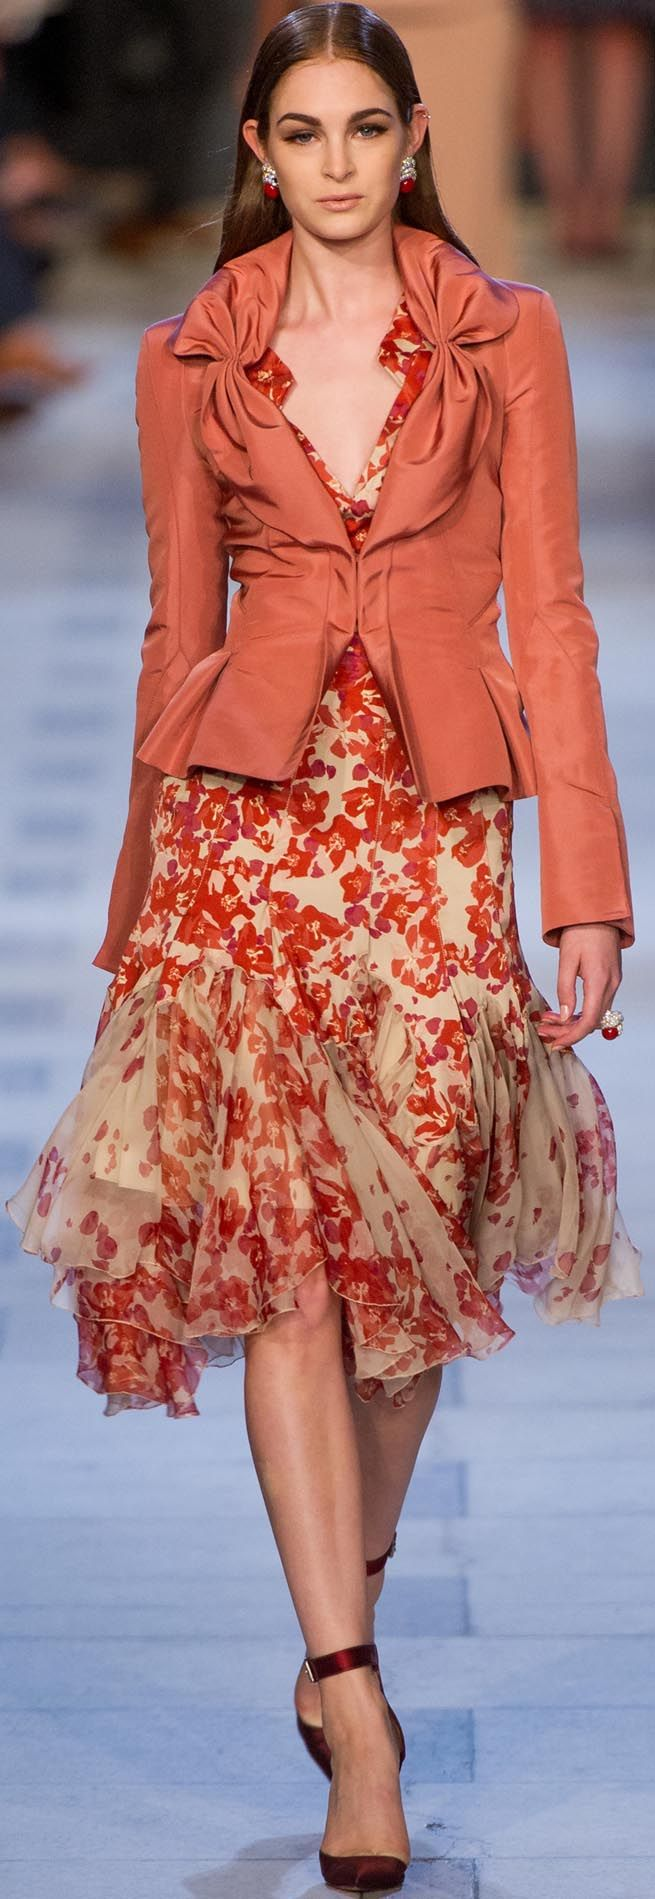 Tones of coral and russet on butterscotch. Chiffon floral dress with gores and handkerchief hemline. Fitted jacket with peplum and gathered detail on collar. Zac Posen 2013 Ready-To-Wear Collection.